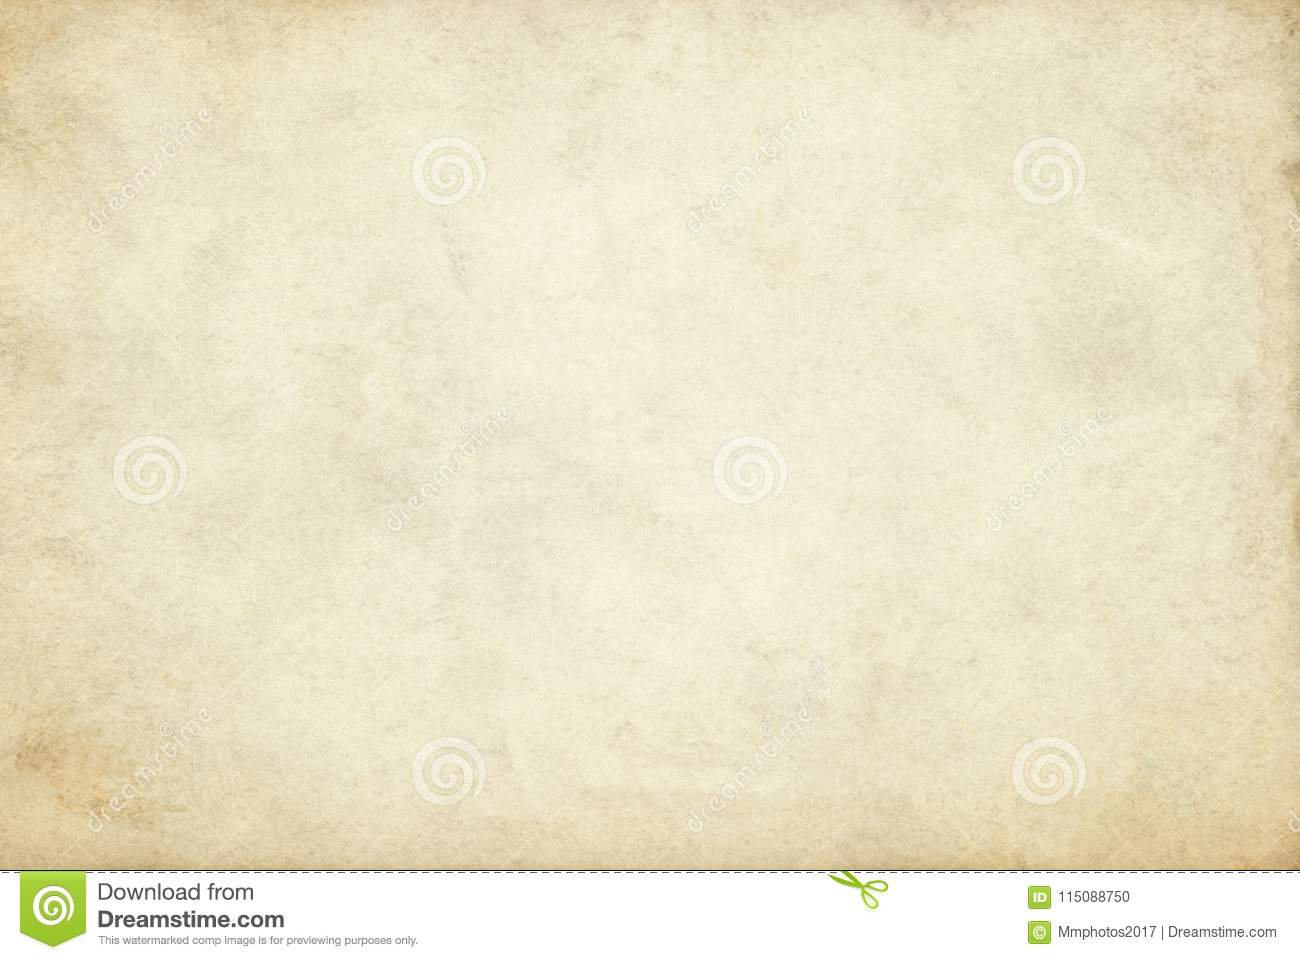 vintage paper texture background stock photo - image of light